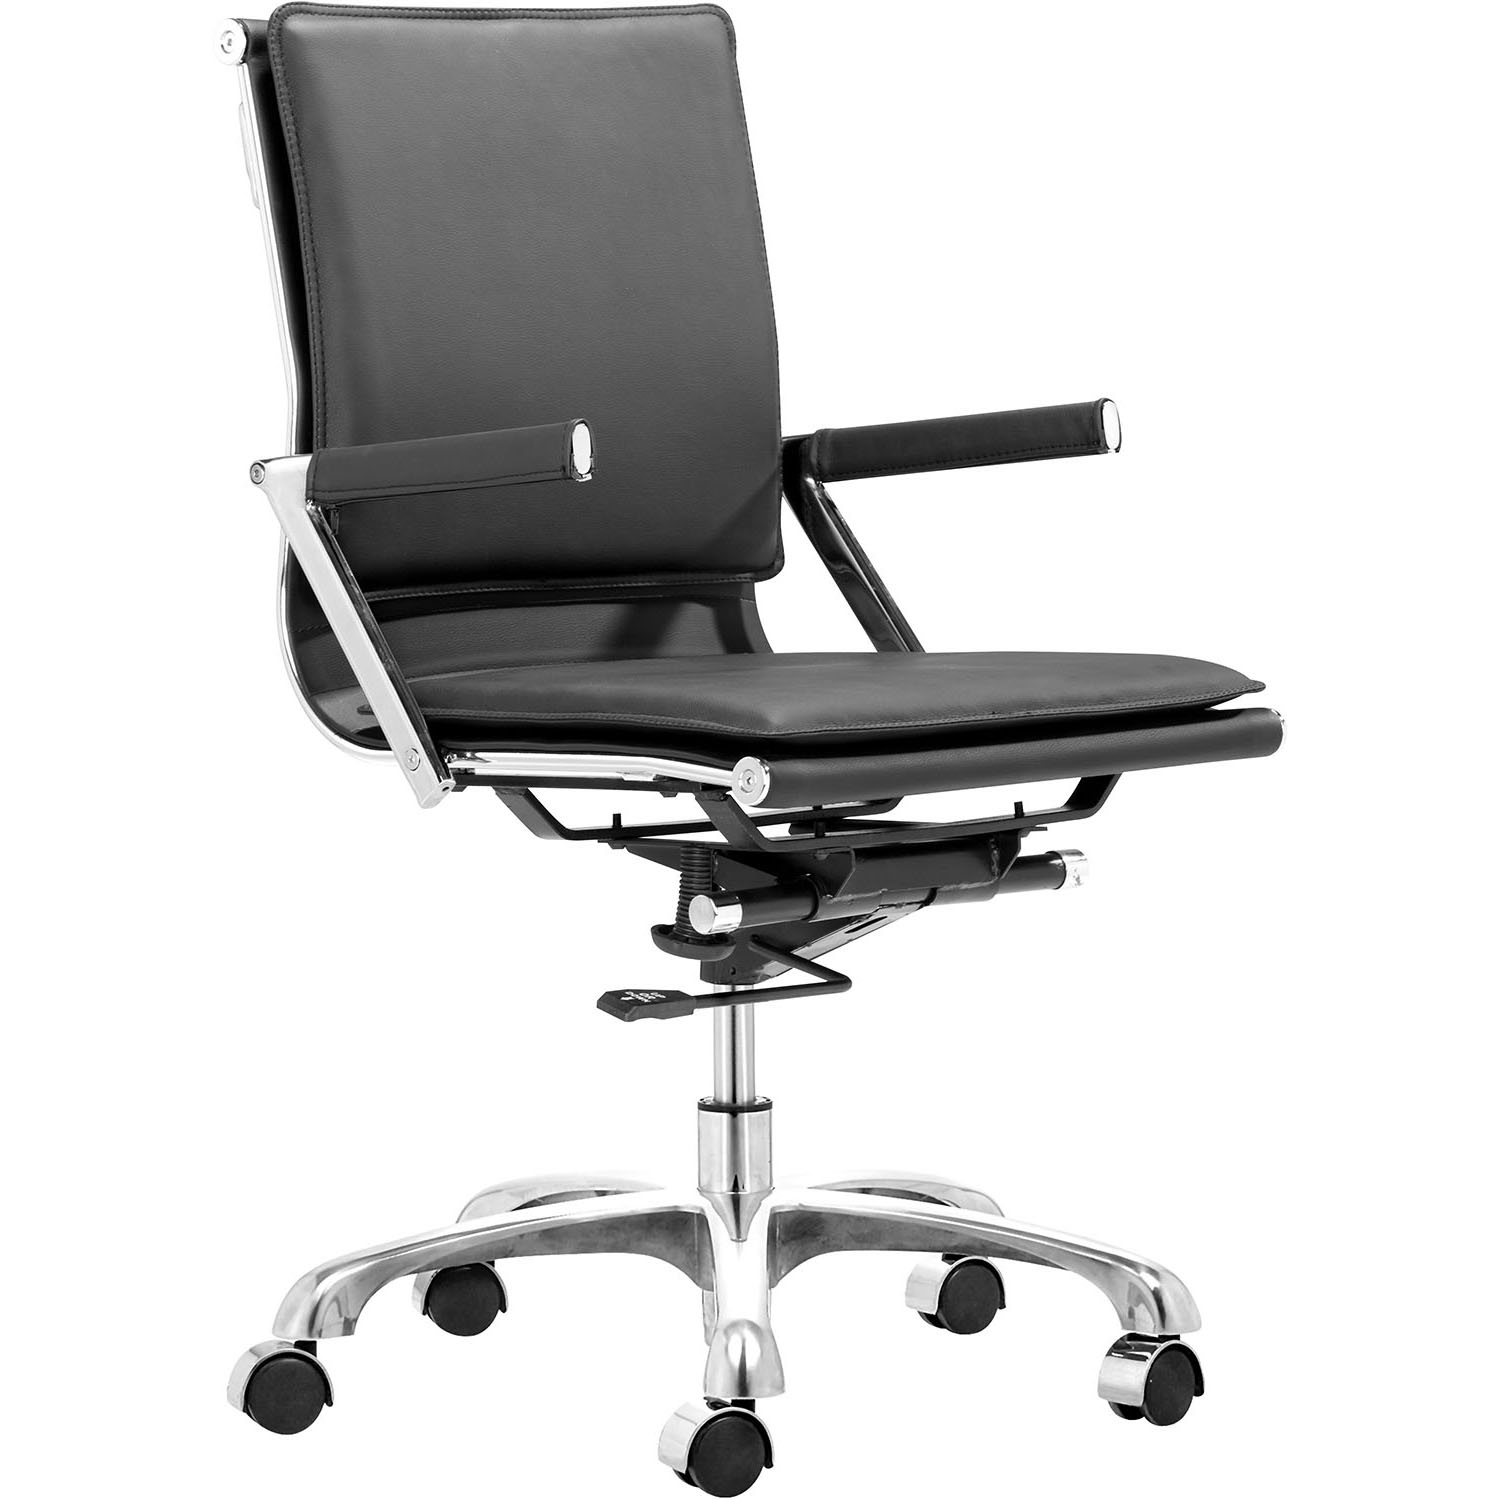 Modern Lider Plus Adjustable Rolling Office Armchair 215212, 215214